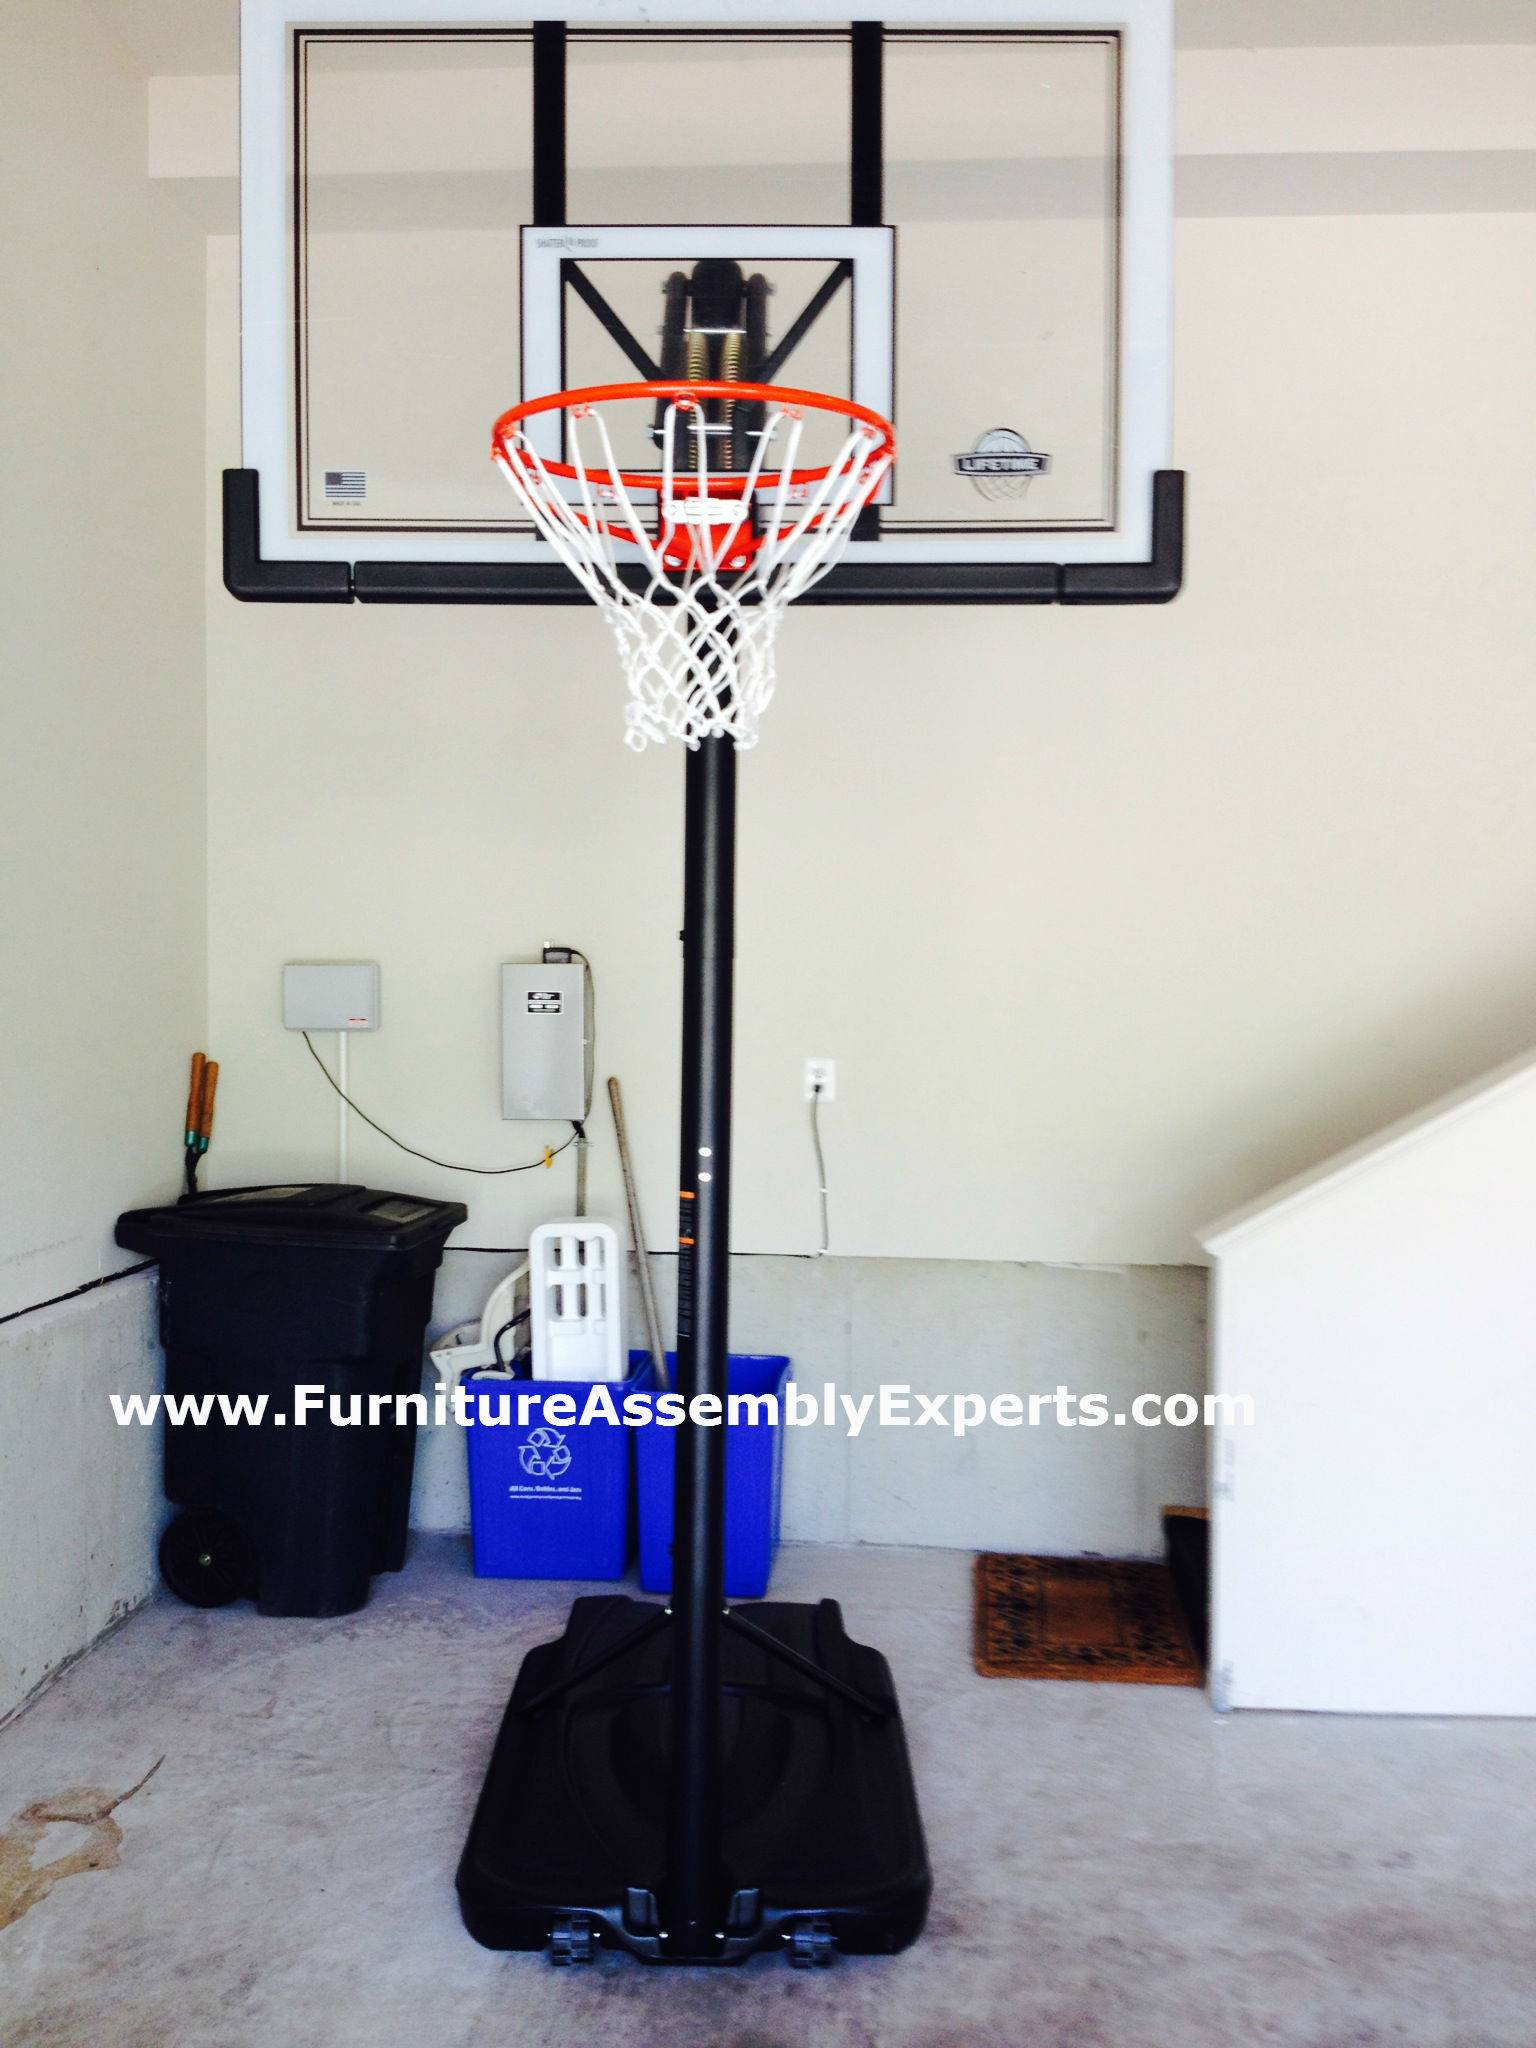 costco portable basketball hoop assembly service in chantilly VA